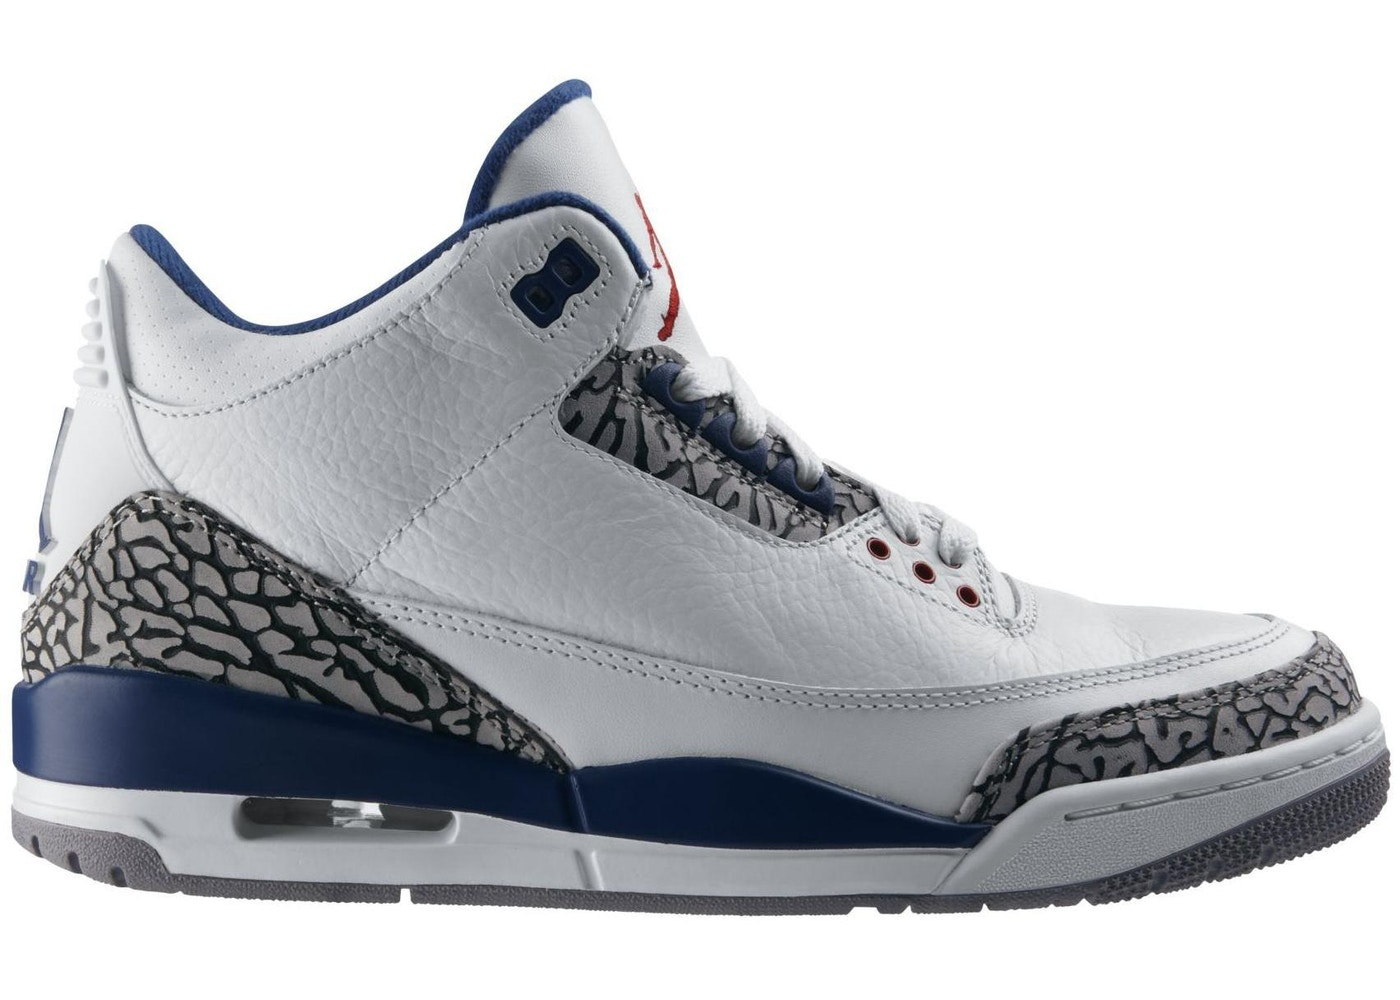 e766386b778dcb Buy Air Jordan 3 Shoes   Deadstock Sneakers